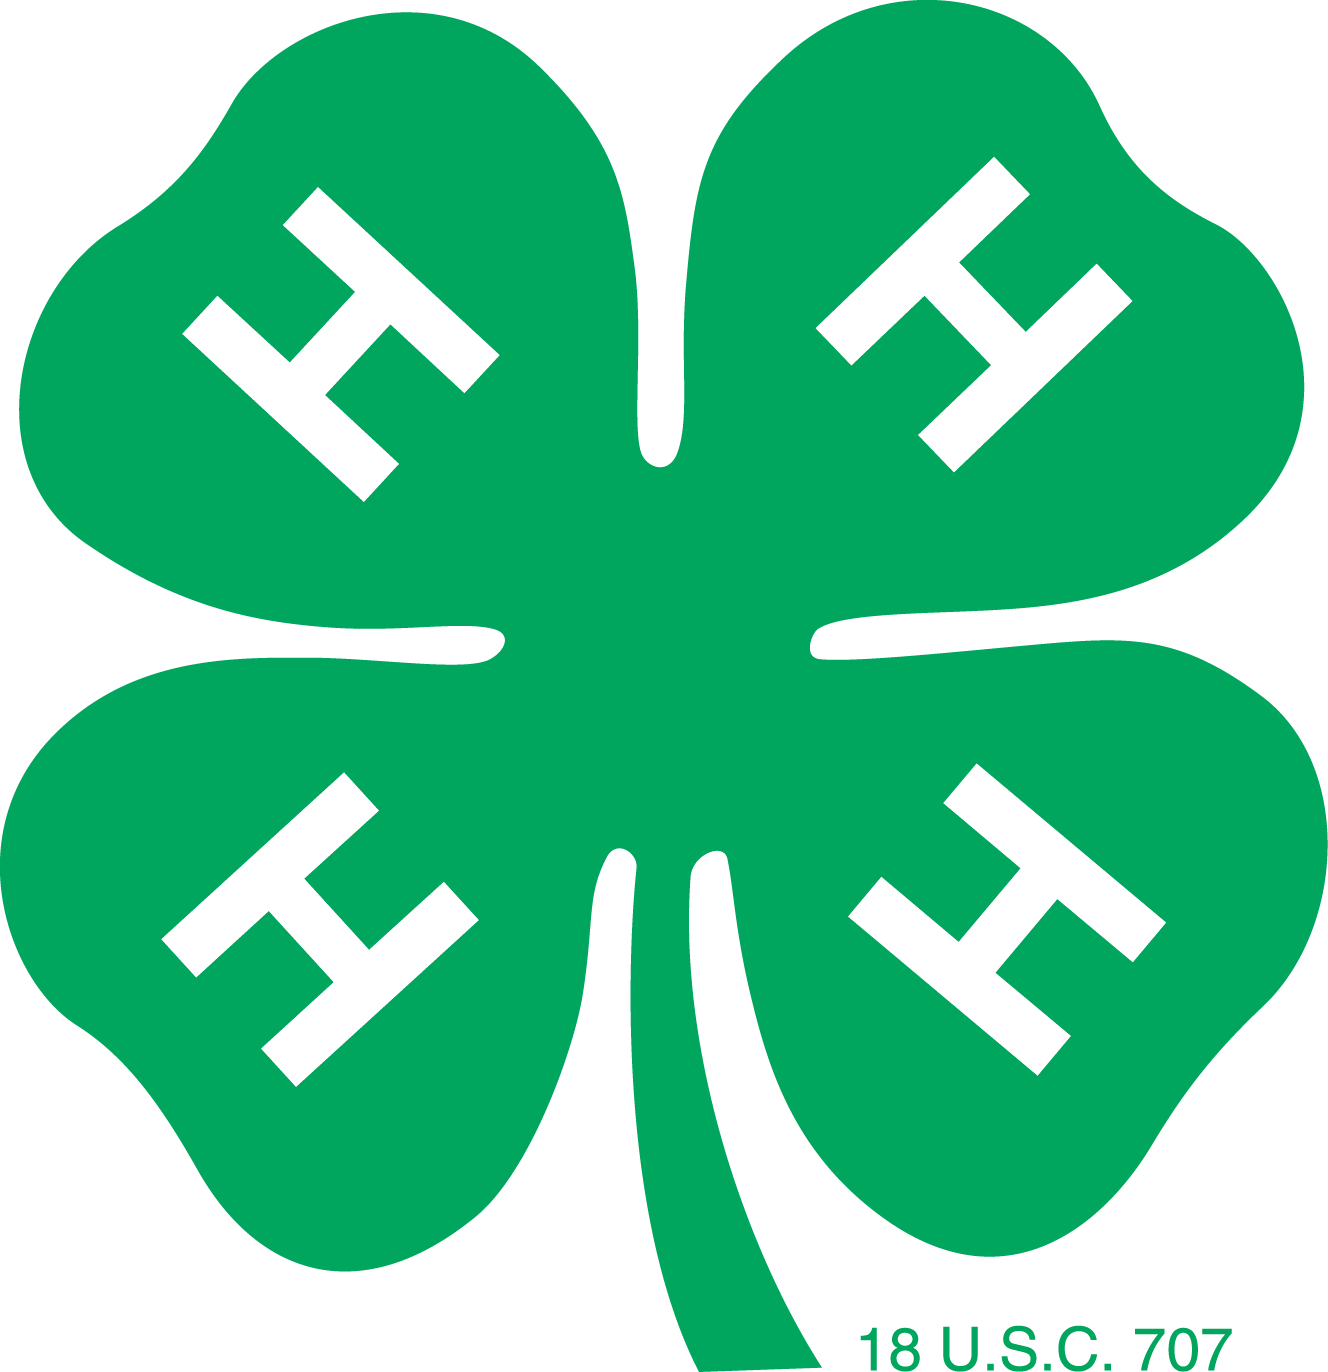 Meaning 4H logo and symbol.